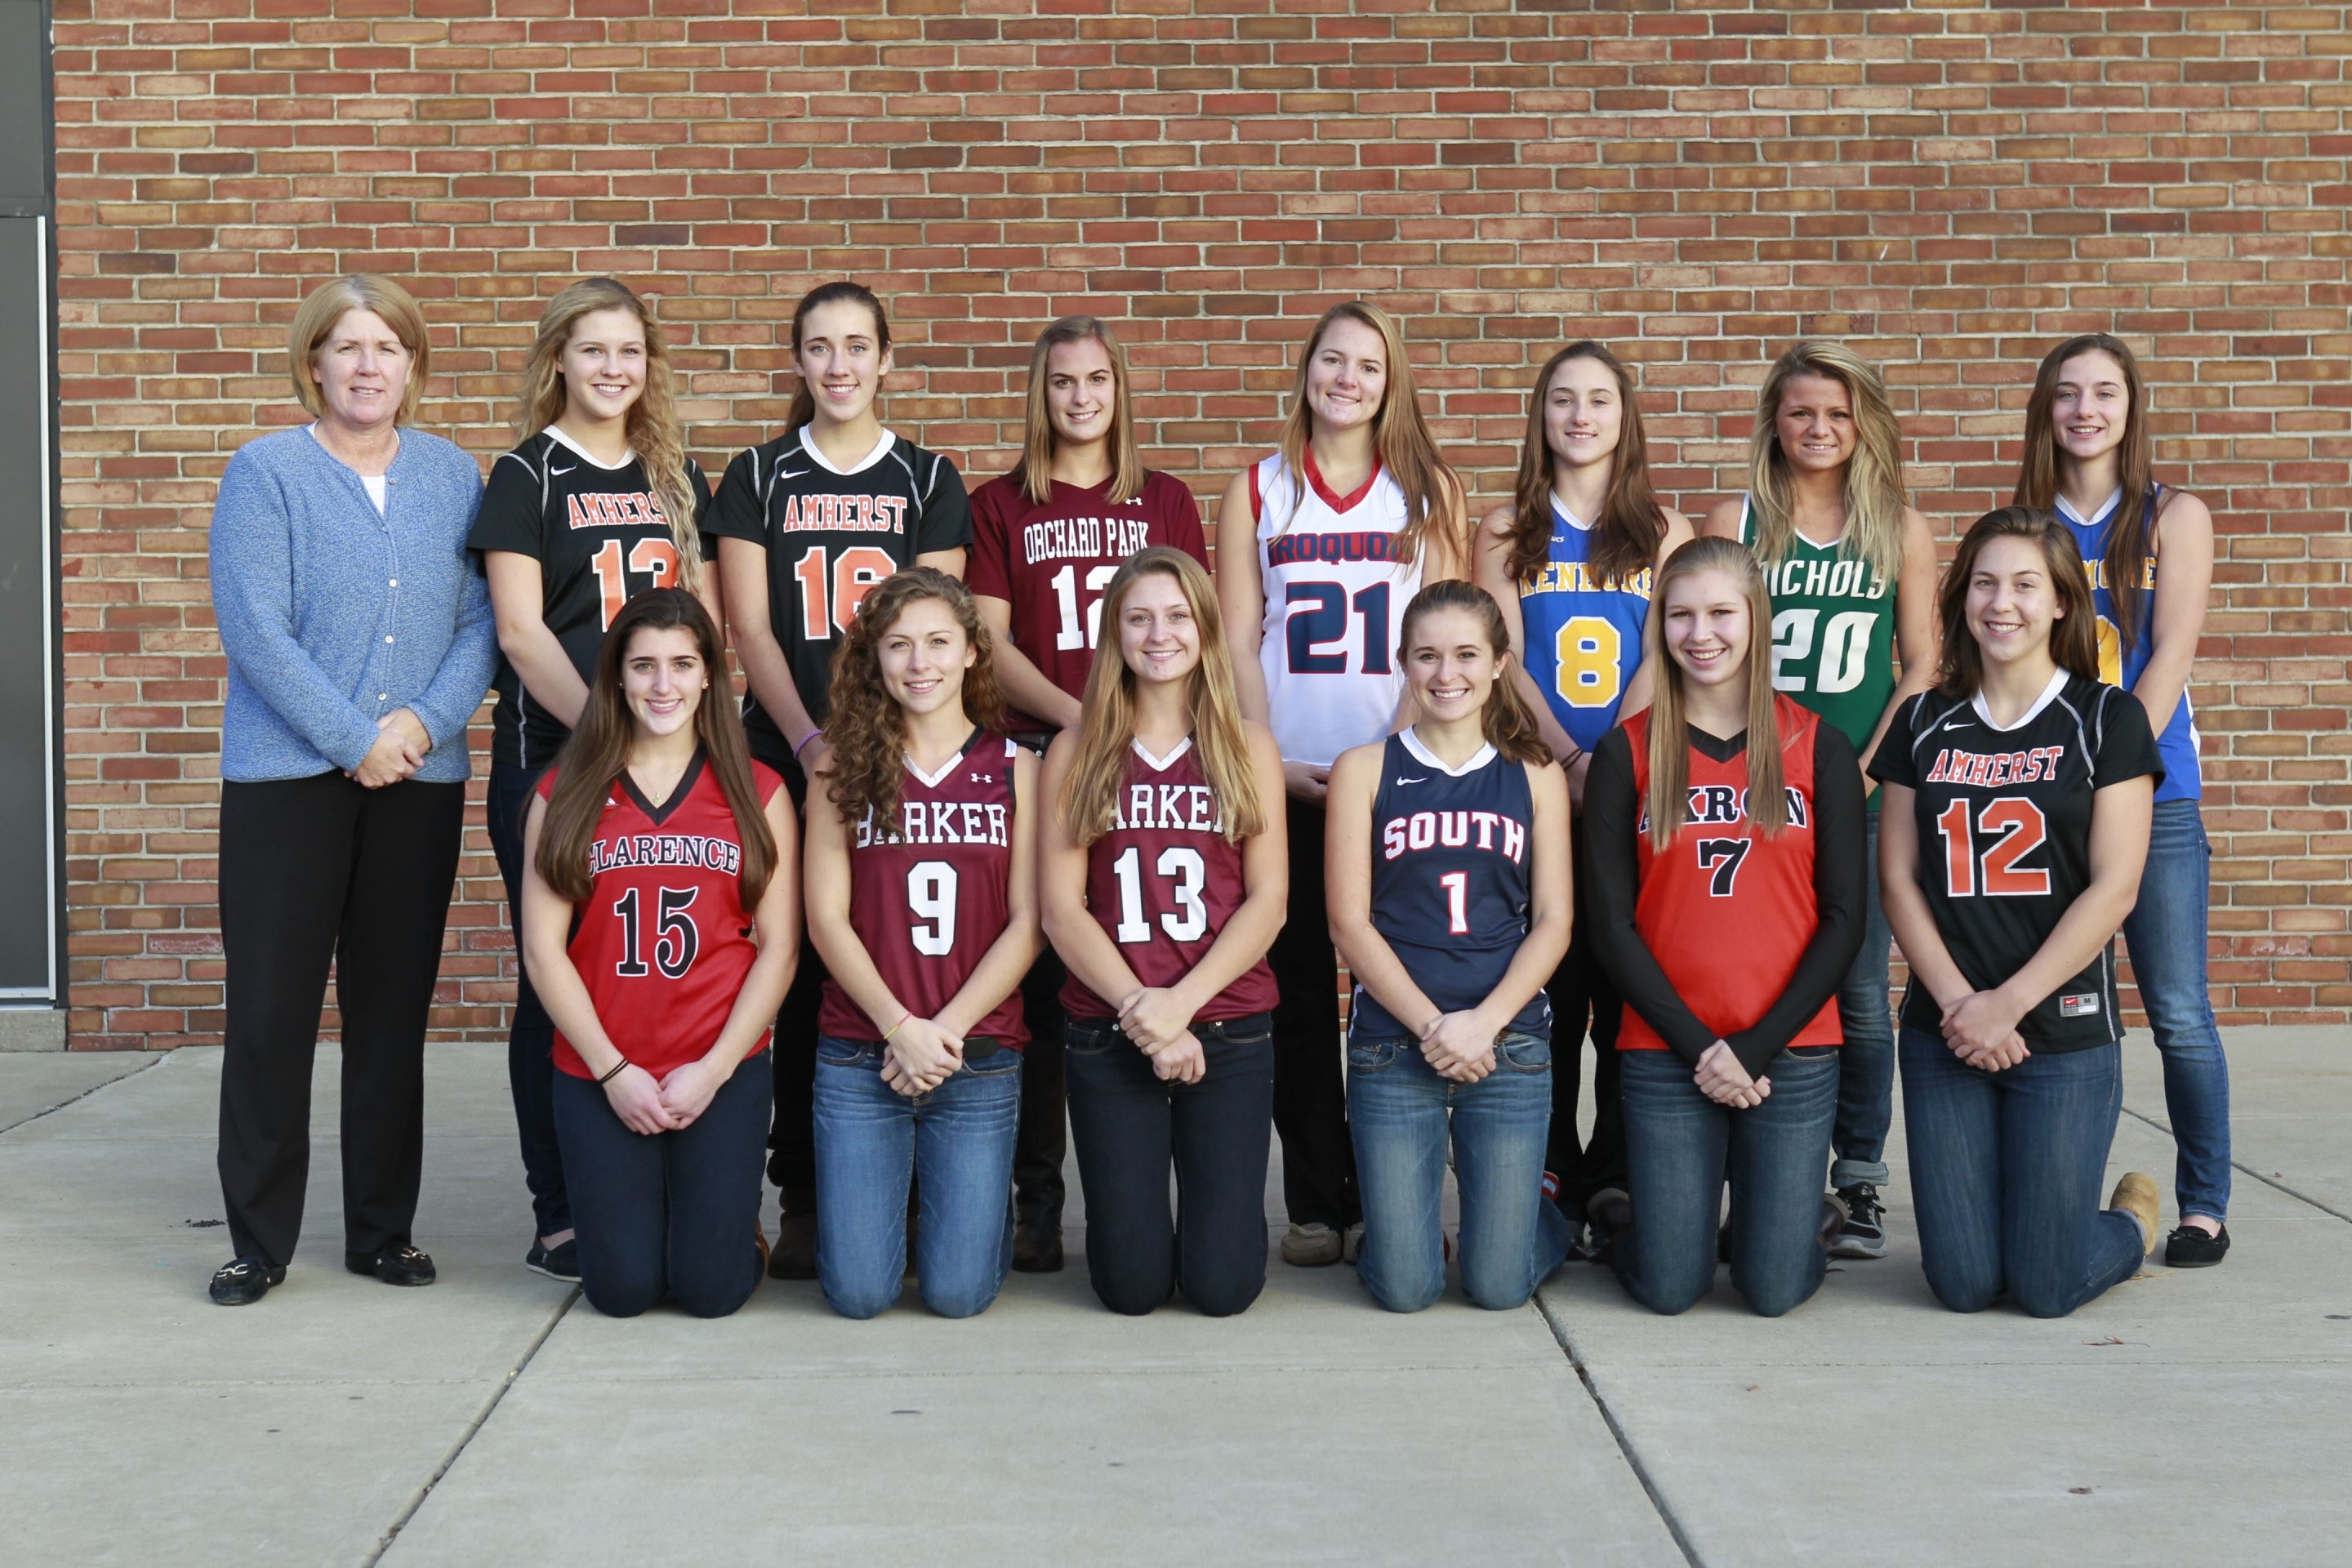 The All-WNY field hockey team, front row, from left: Giovanna Fasanello, Clarence; Olivia Denny, Barker;  Heather Mason, Barker; Morgan Maley, Wmsv. South; Claudia Stone, Akron; and Jane Edginton, Amherst. Back row, from left: ECIC Coach of the Year Laurie LeGoff, Amherst; Taylor Balser, Amherst; Yanna Boggio, Amherst; Emily Markarian, Orchard Park; Kristen Audette, Iroquois; Brianna Mathias, Kenmore; Nicolette Tomani, Nichols, and Kaeli Mathias, Kenmore. Not pictured: Meghan Fonfara, Iroquois.